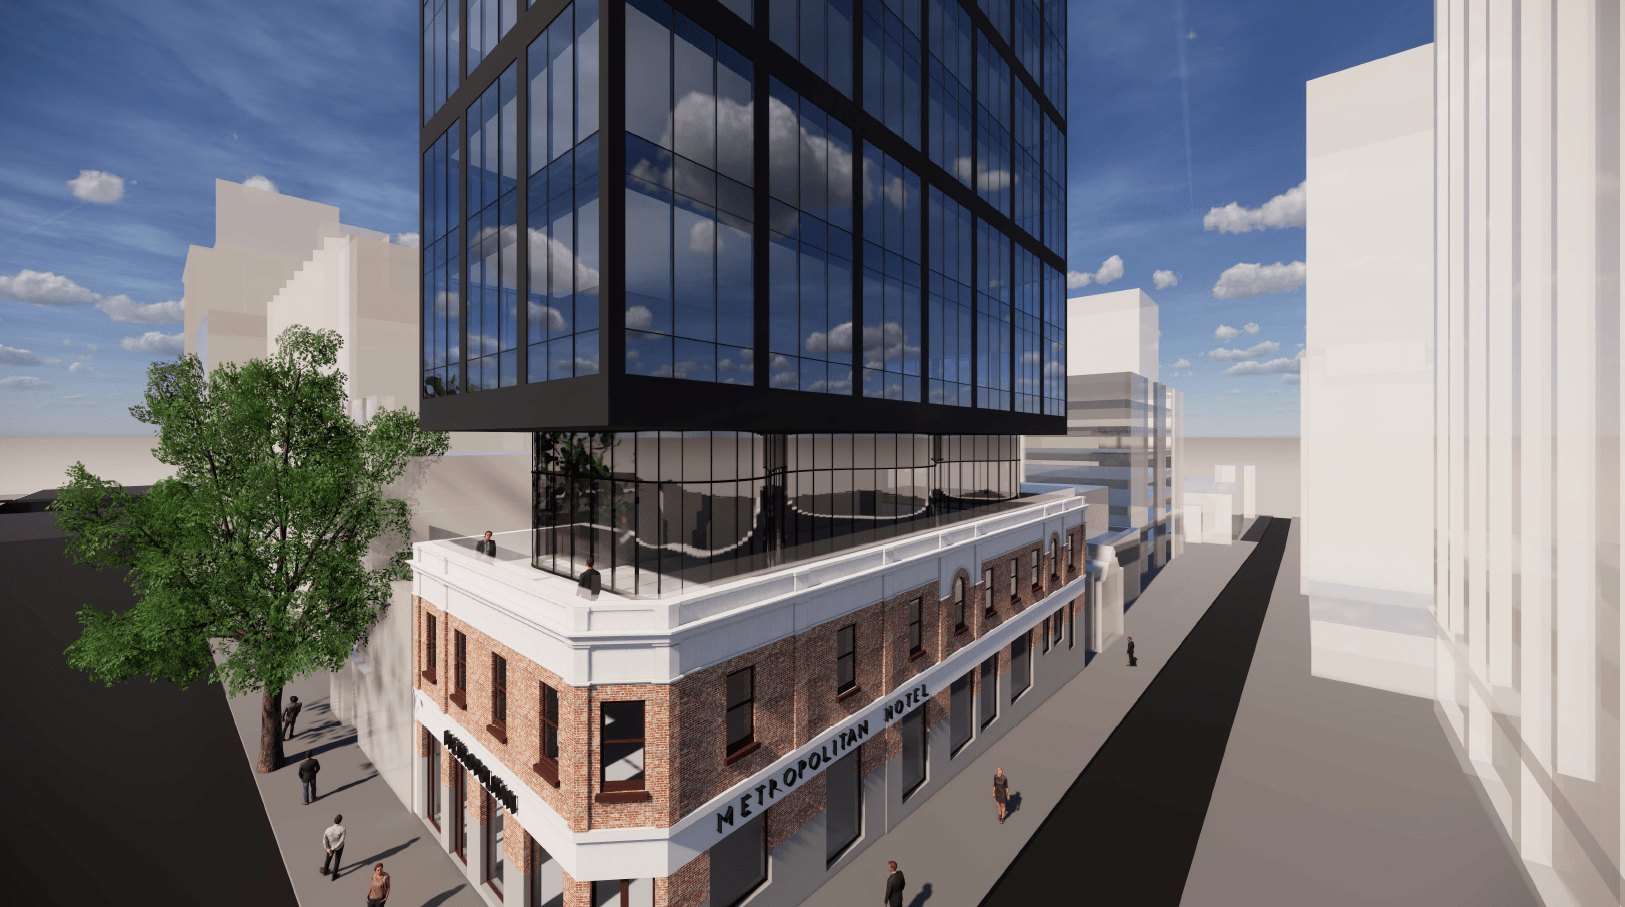 DeGroup to go ahead with $70m office tower in Melbourne CBD